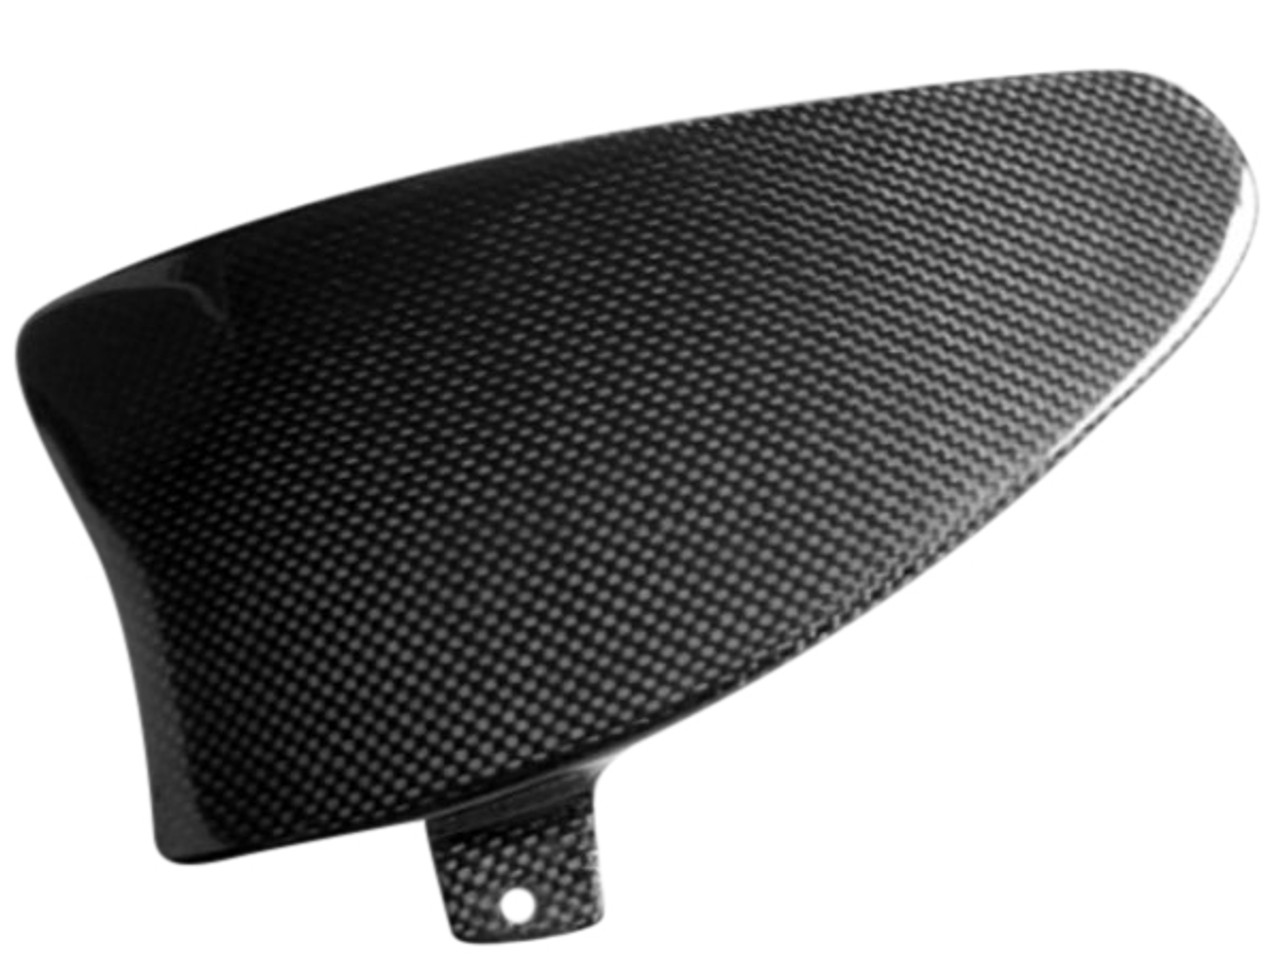 Swing Arm Infill Panel in 100% Carbon Fiber for Buell XB9,XB12